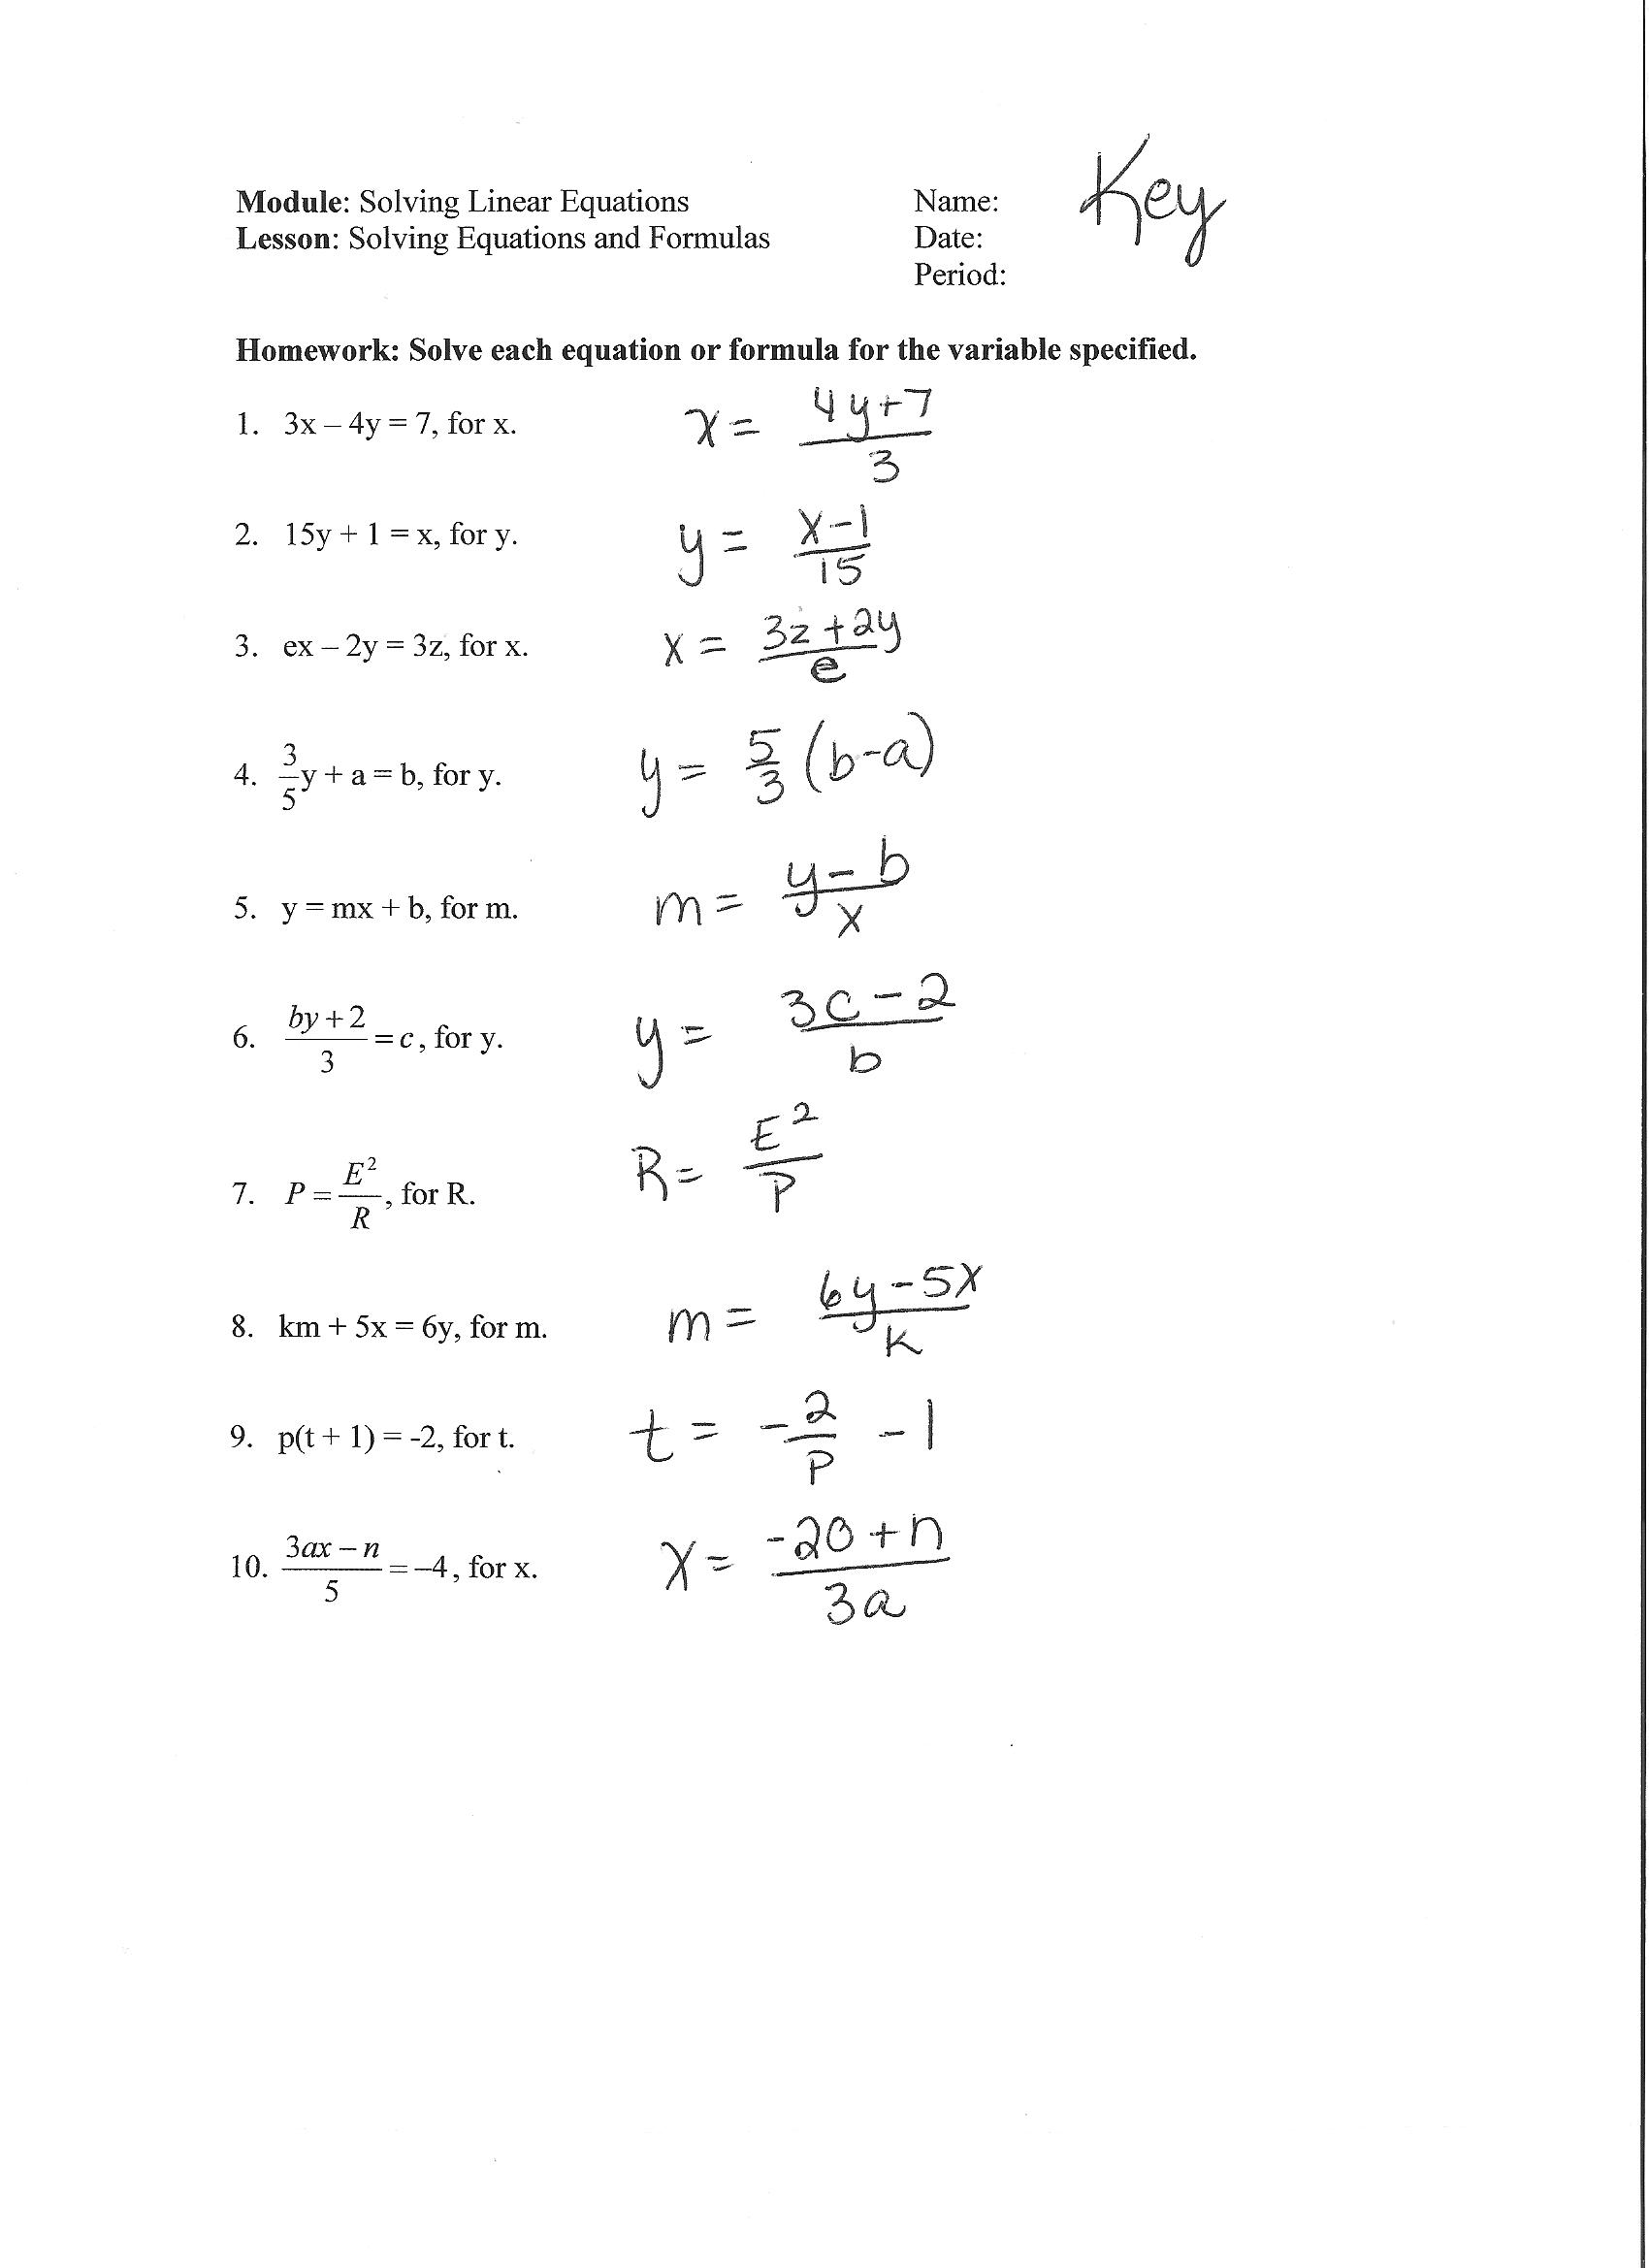 Printables Solving Equations Worksheets solving equations printable worksheets imperialdesignstudio 2338 167 kb jpeg with answers